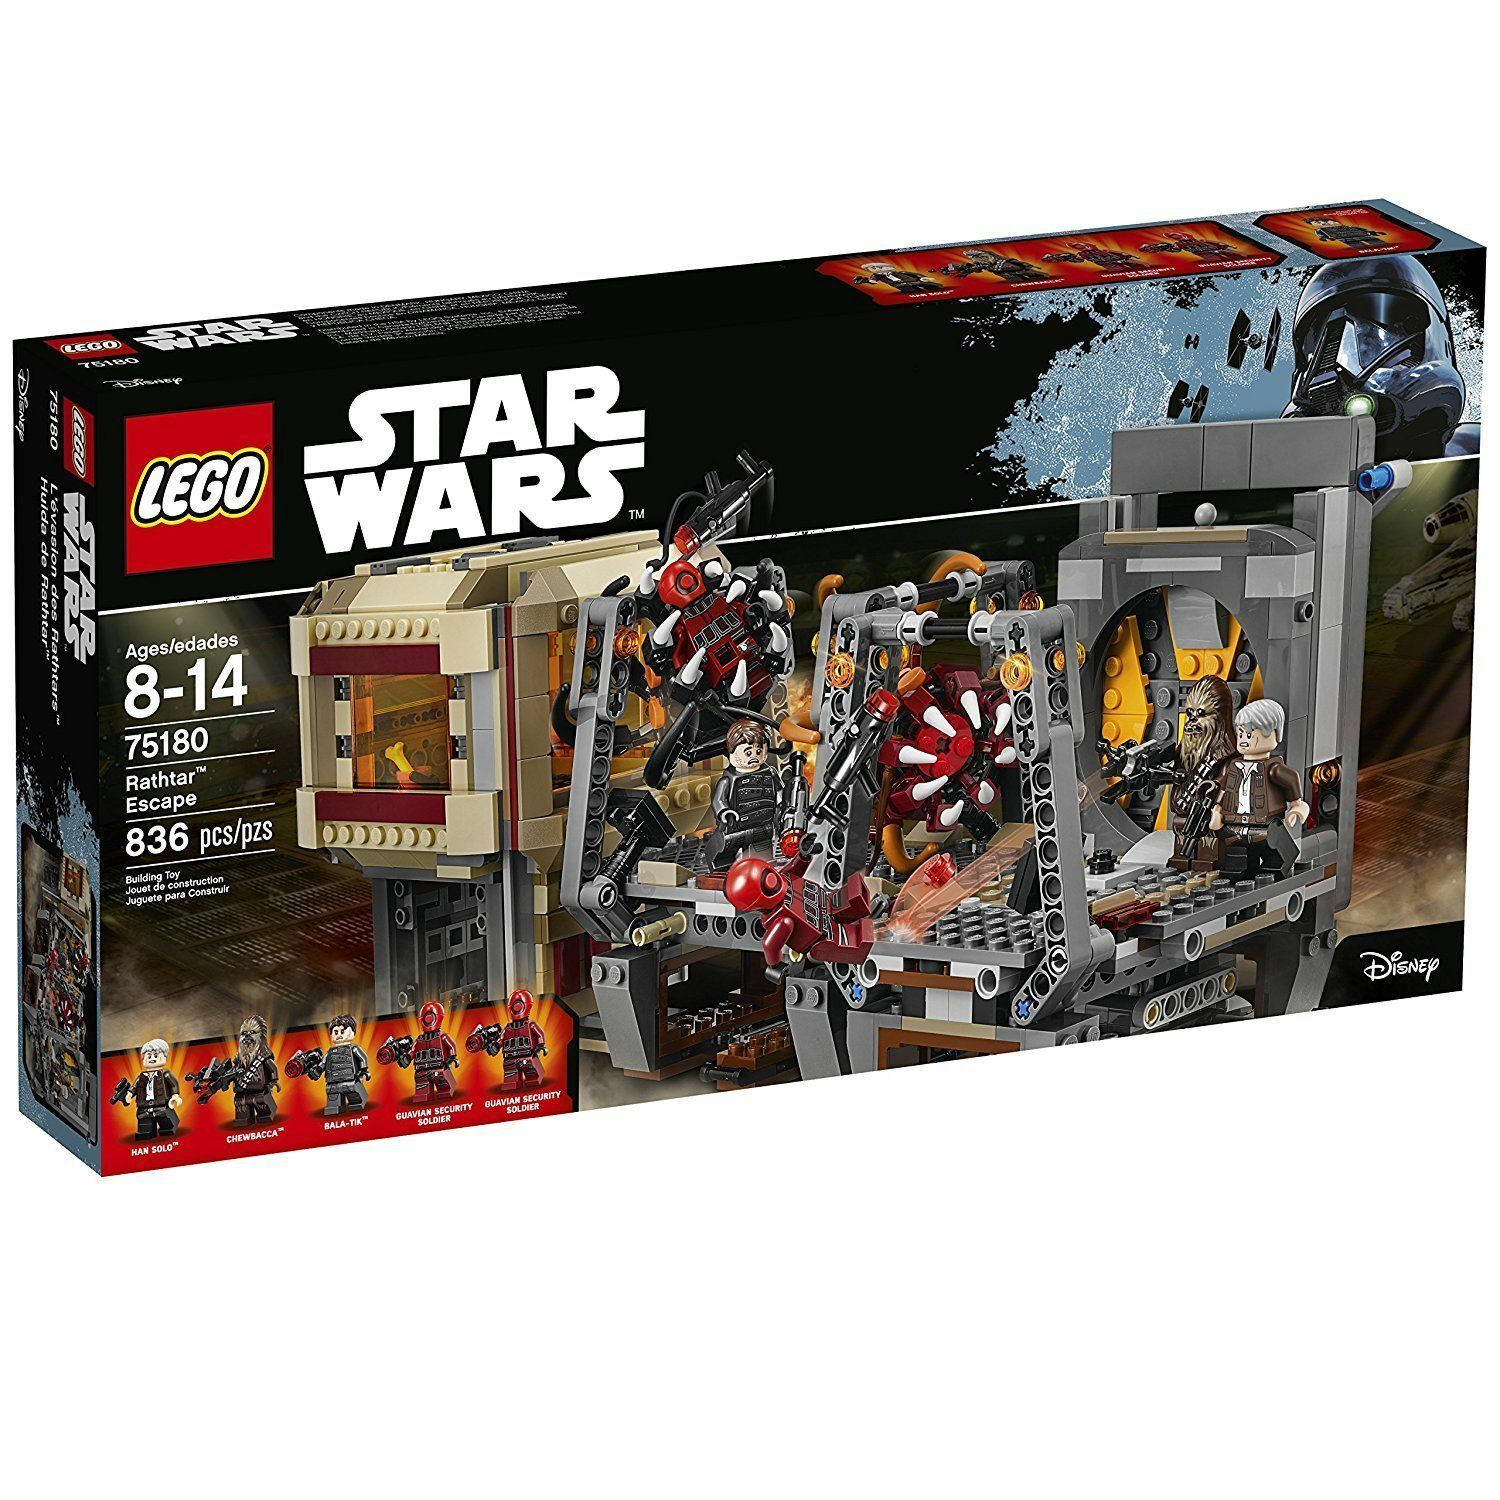 75180 RATHTAR ESCAPE star wars lego NEW legos set FORCE AWAKENS han solo chewey